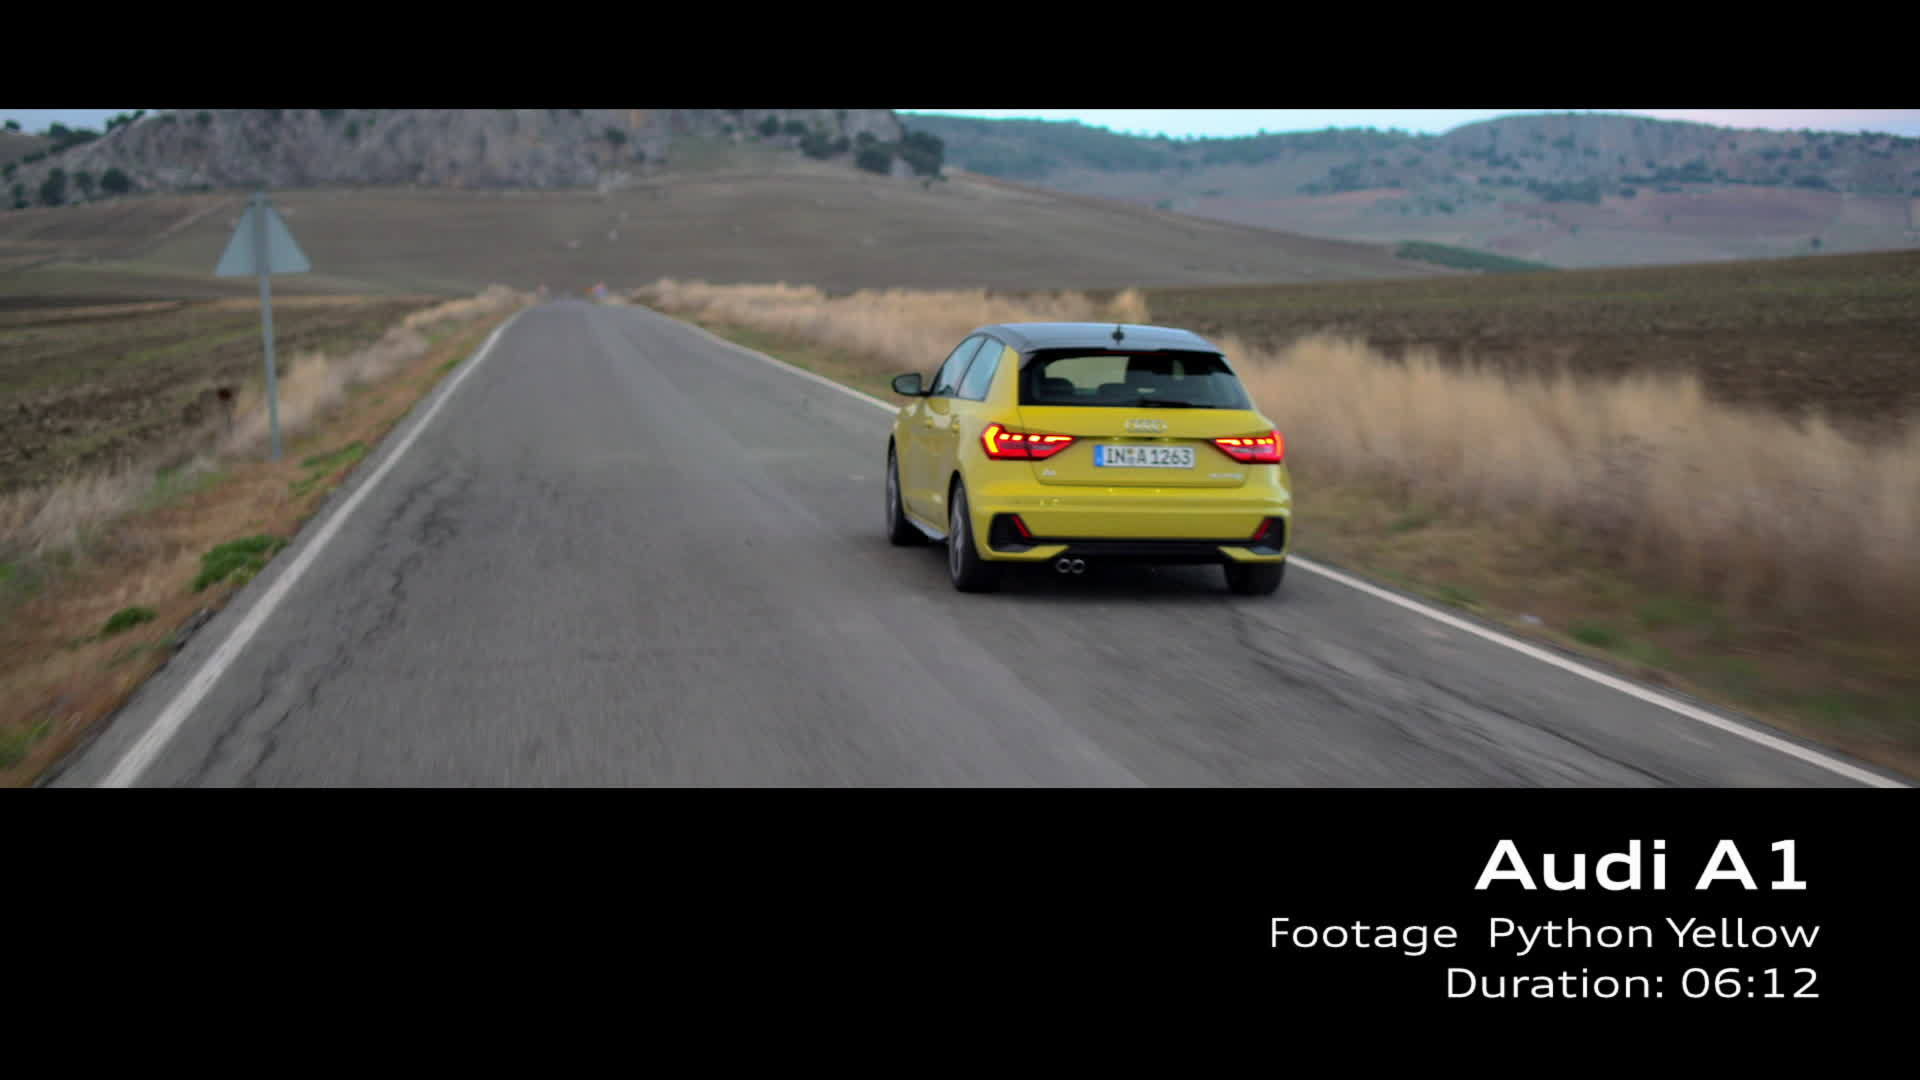 Audi A1 Footage Python yellow (2018)